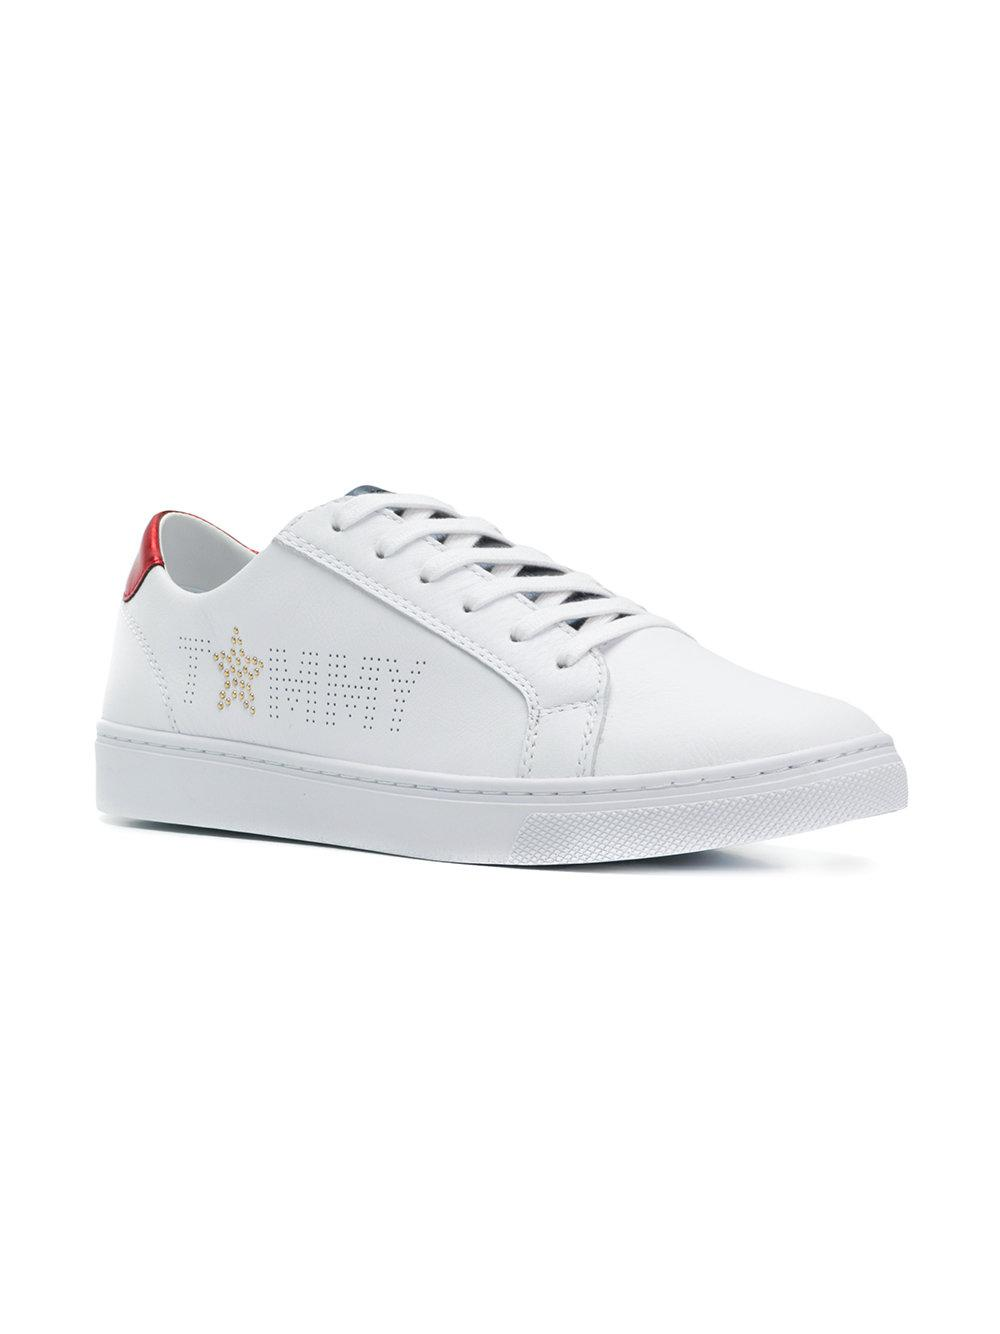 b1e547ad9e3e24 Lyst - Tommy Hilfiger Perforated Logo Sneakers in White